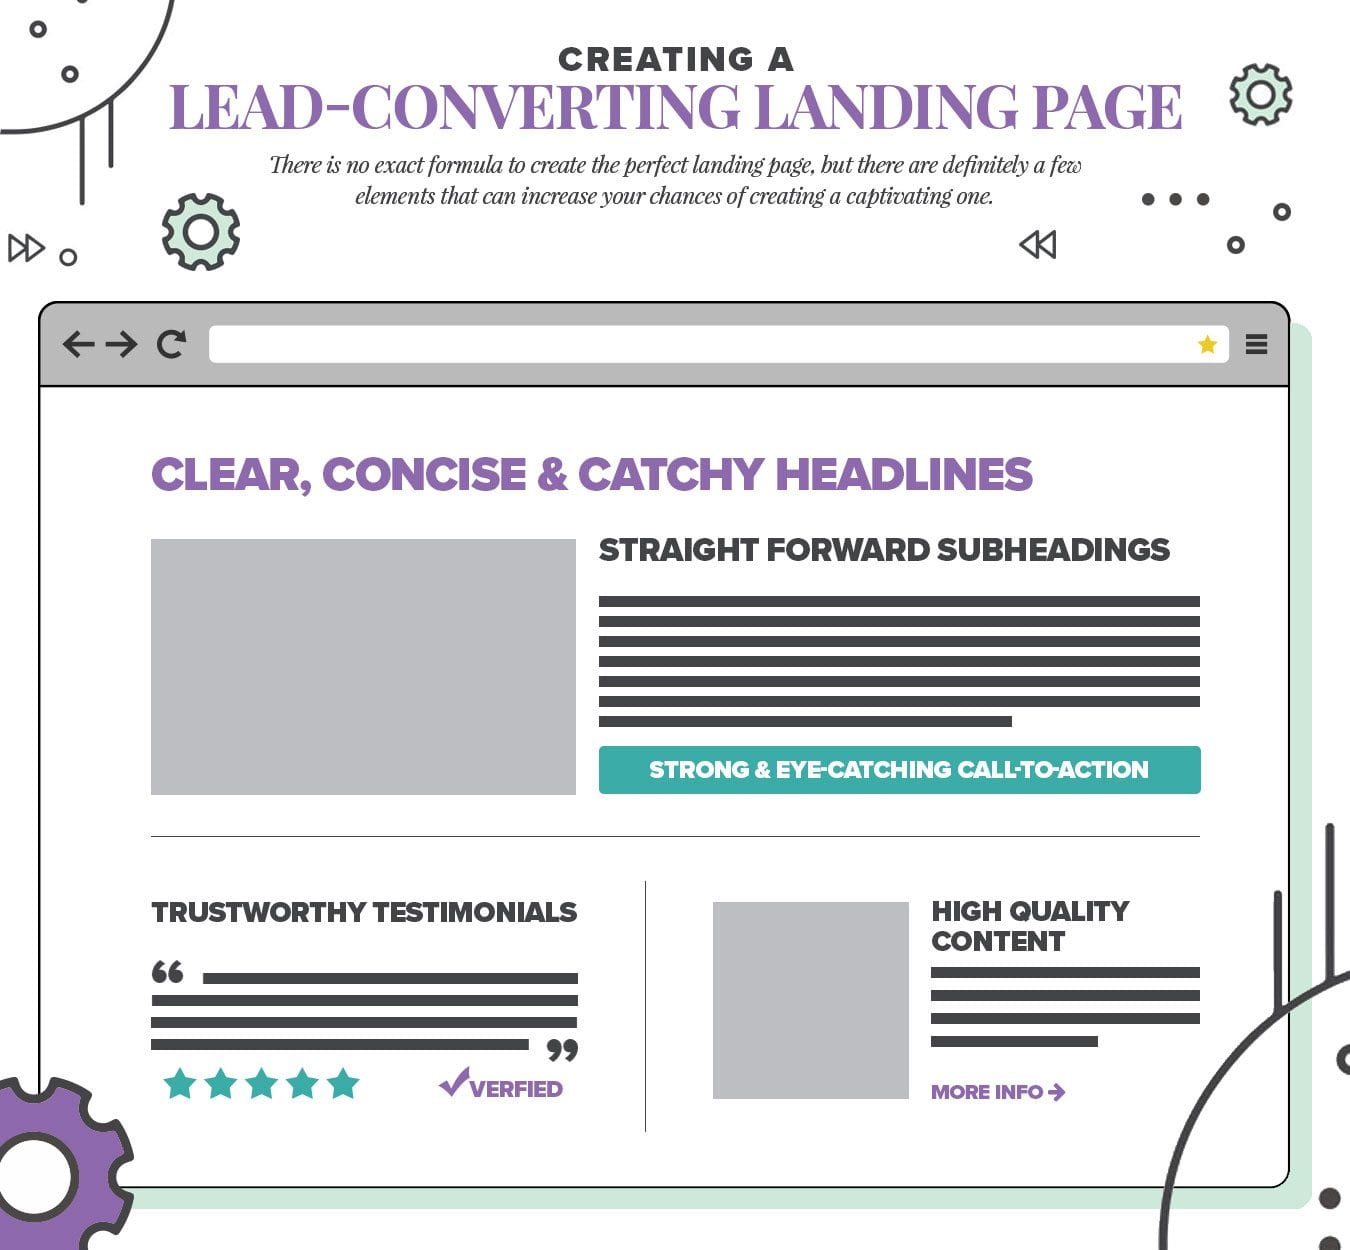 Best Practices to Create the Perfect Landing Page